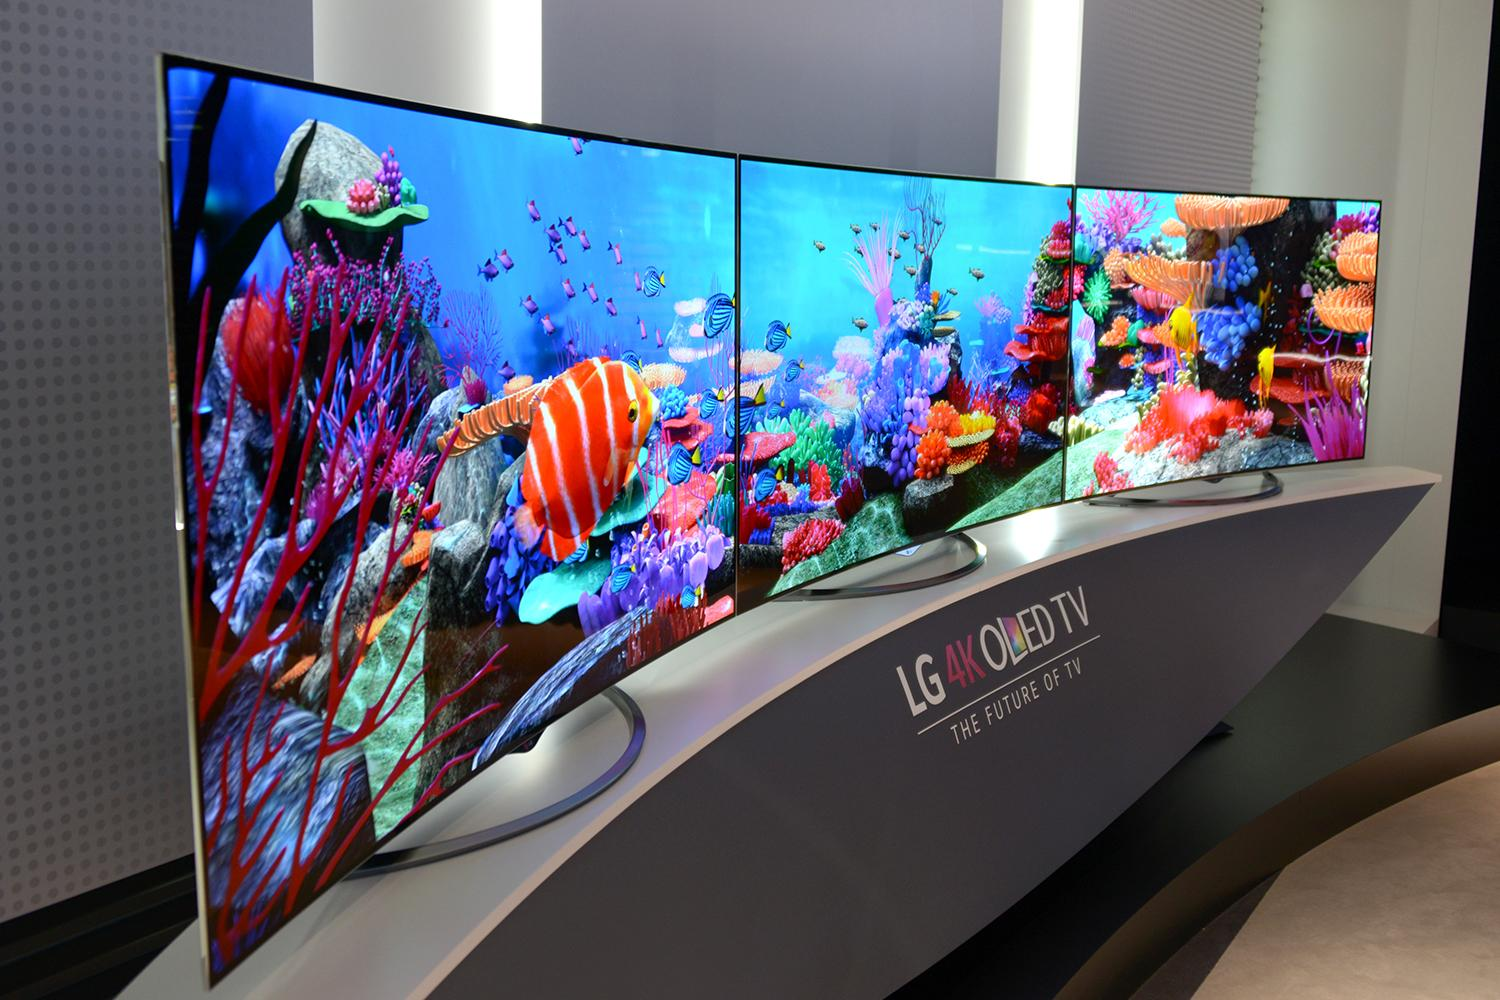 lg 39 s 4k uhd oled tvs will cost 10k plus digital trends. Black Bedroom Furniture Sets. Home Design Ideas